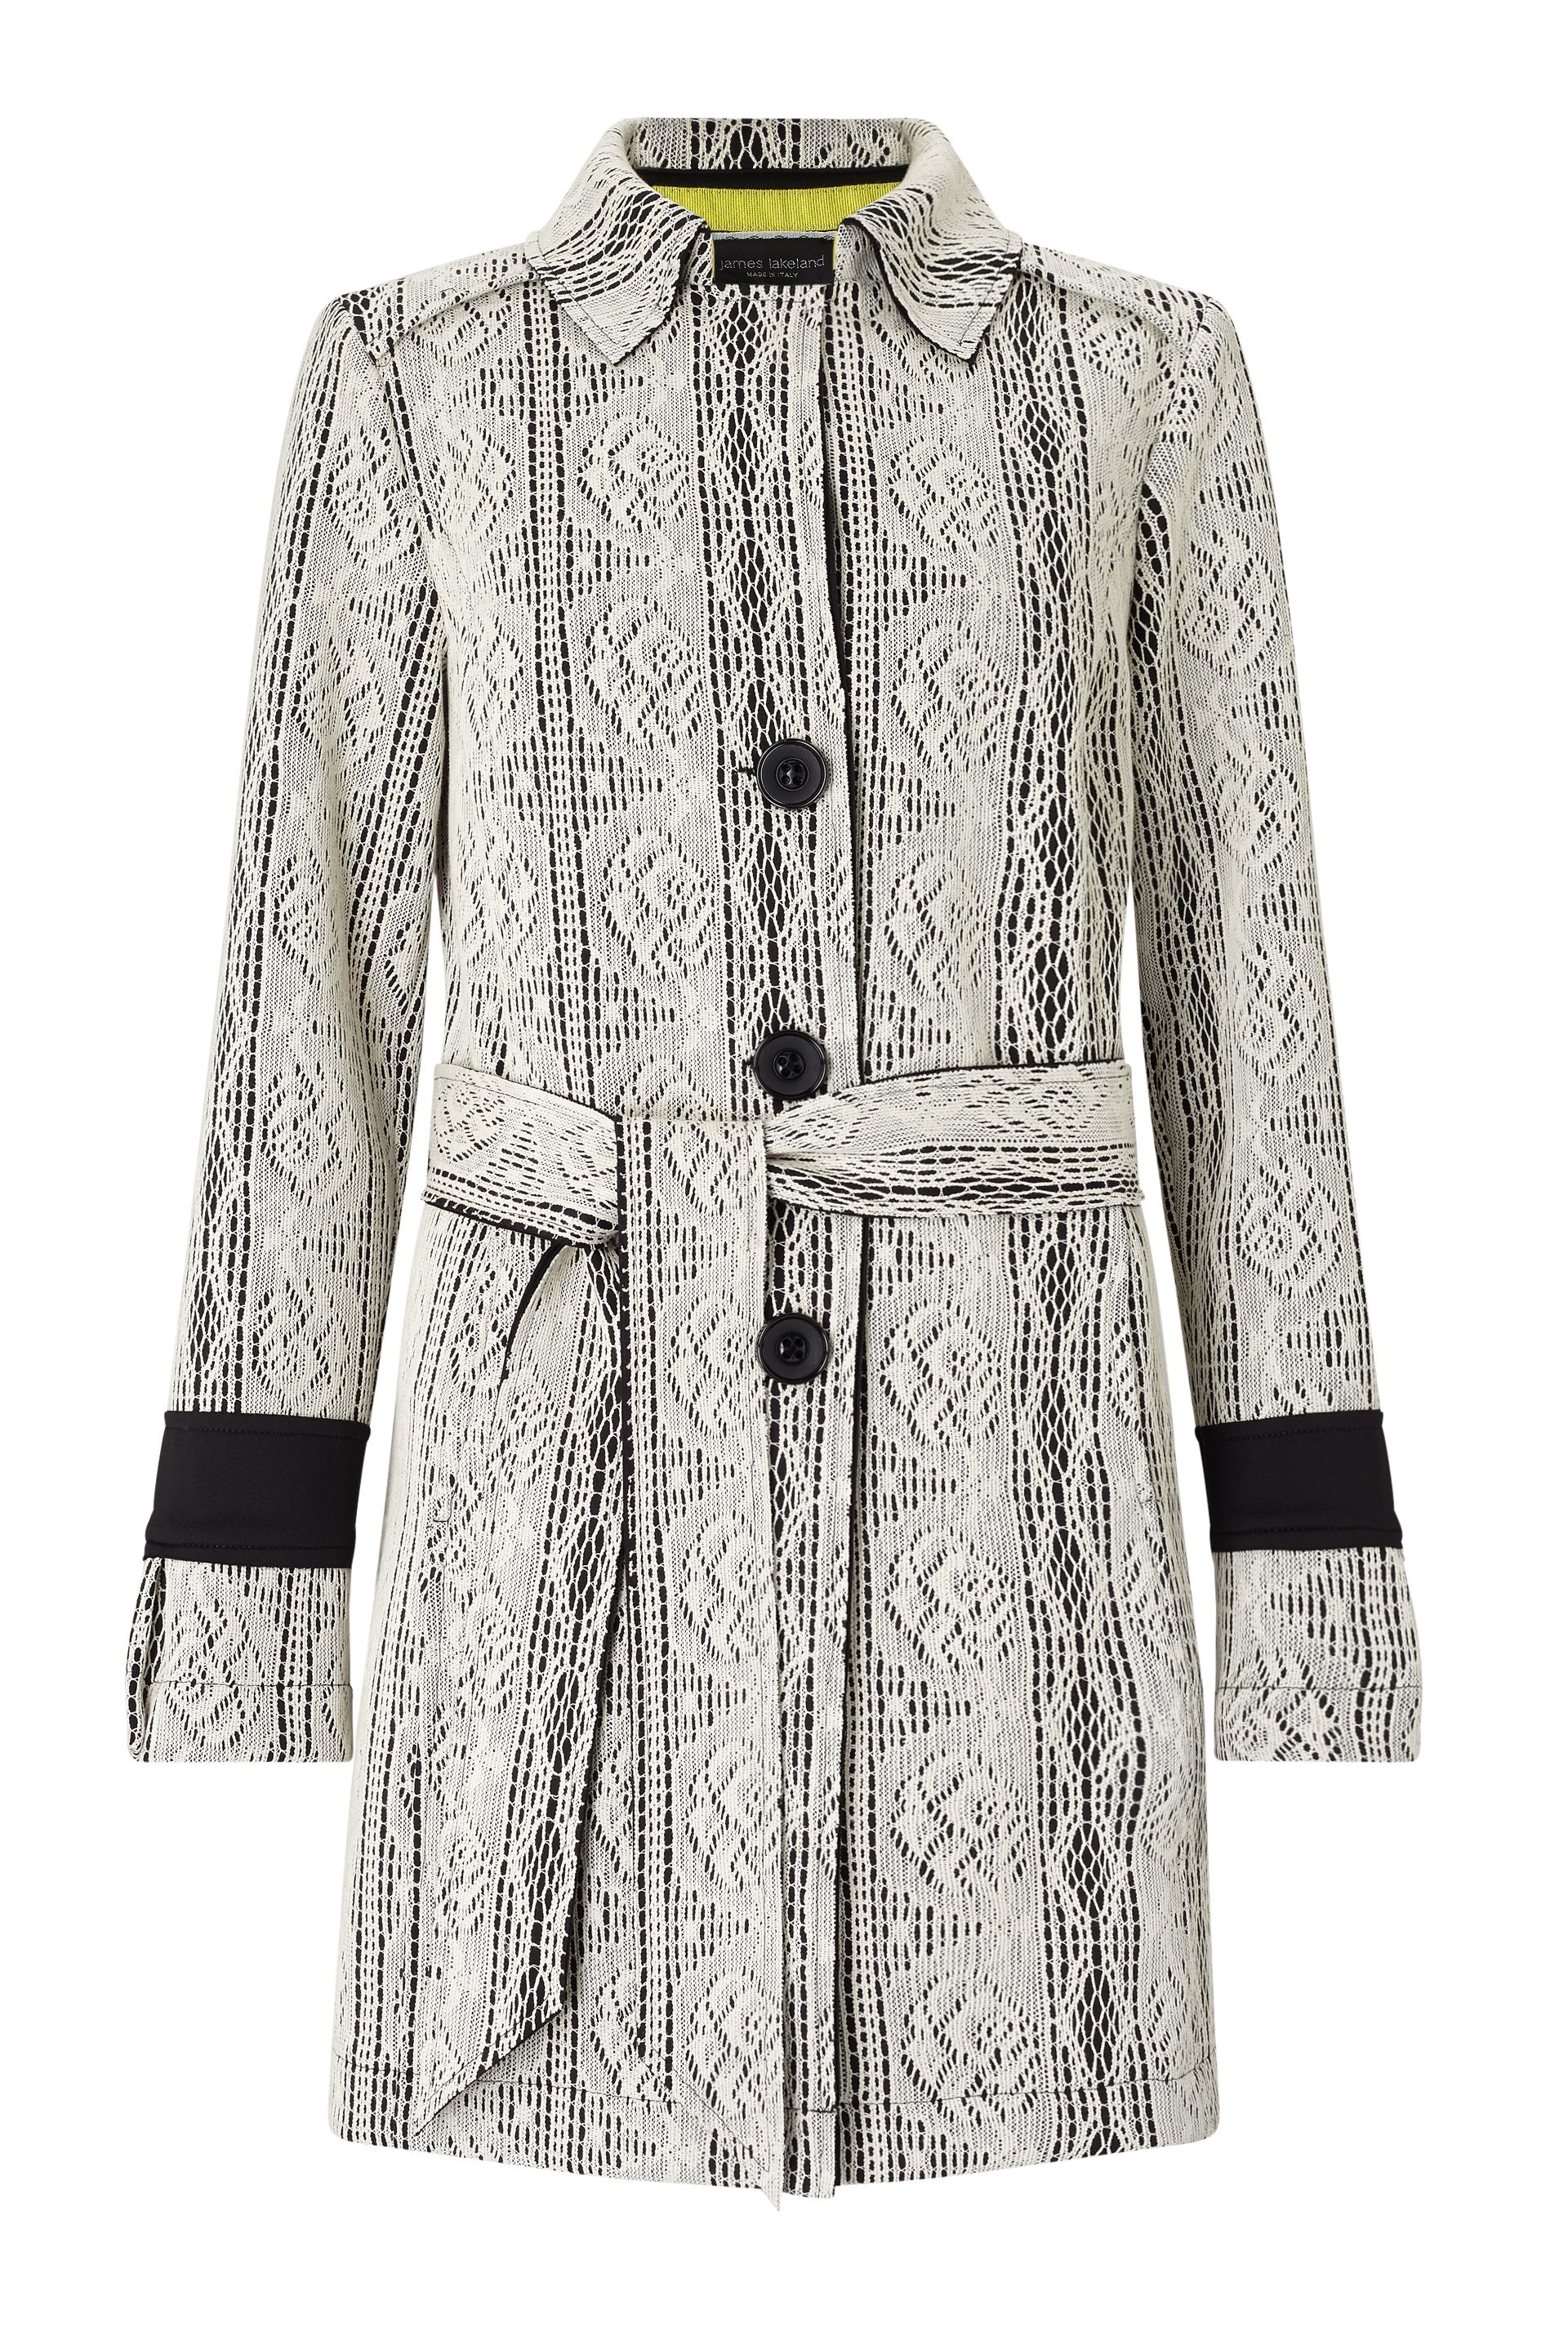 James Lakeland Lace Trench, Black